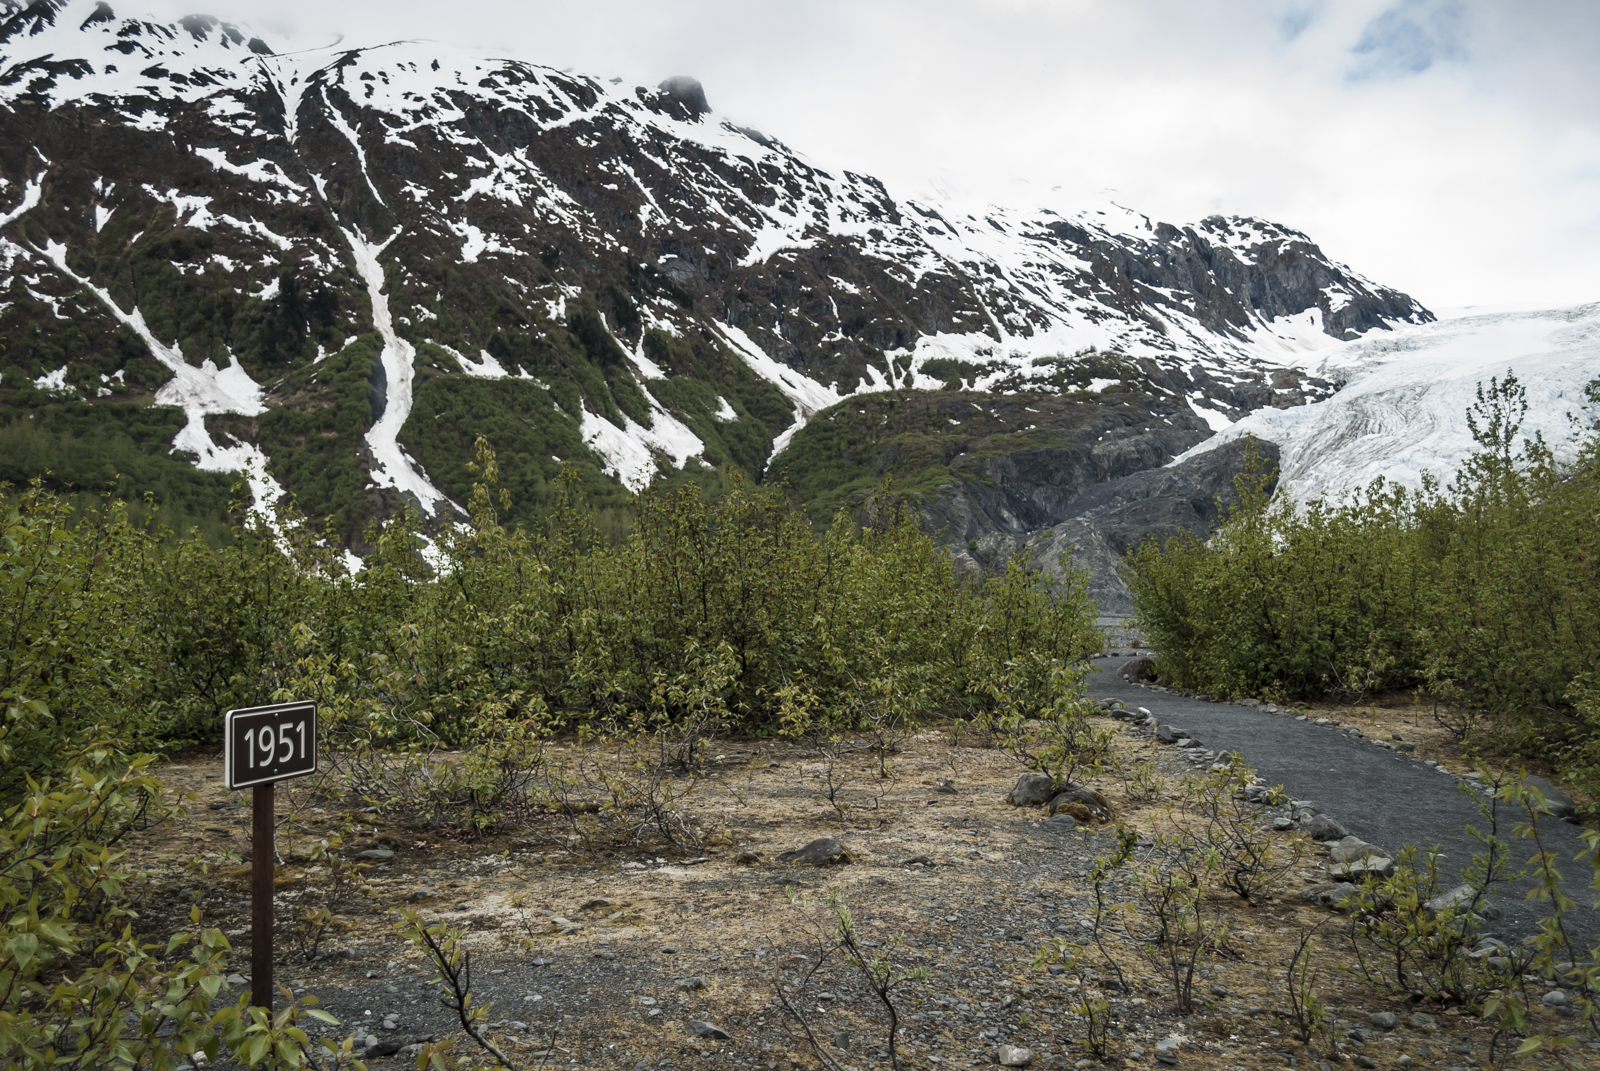 This trail leads to the viewing area and the toe of Exit Glacier. The marker in the image denotes the location of the glacier in 1951, illustrating how far Exit Glacier has receded since then.